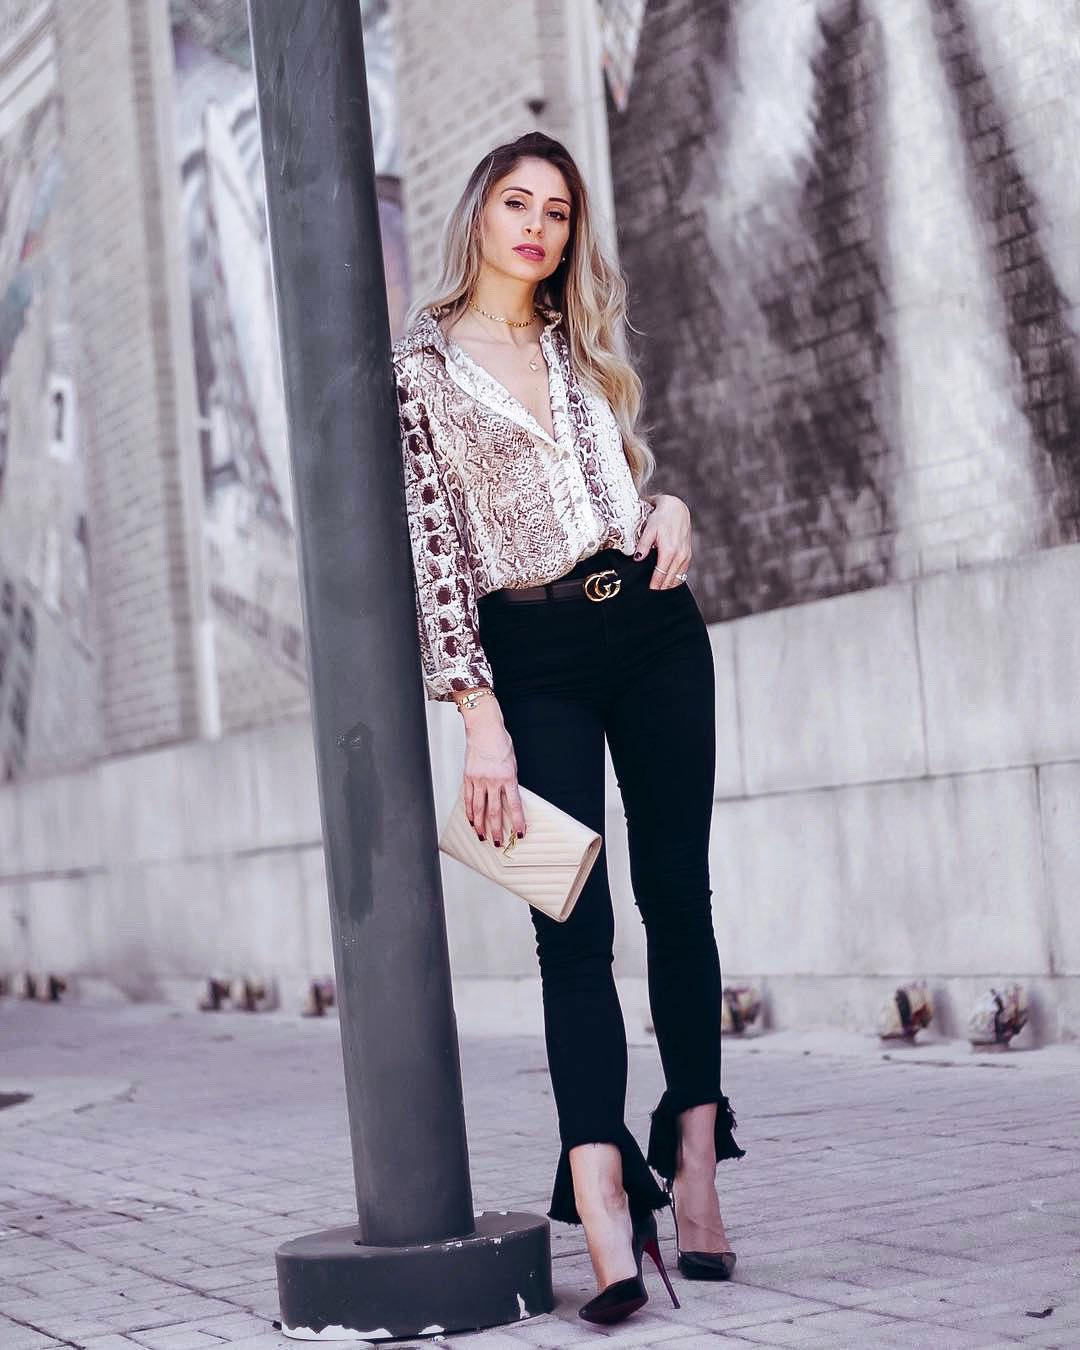 Snakeskin Print Shirt With Black Jeans   Outfit